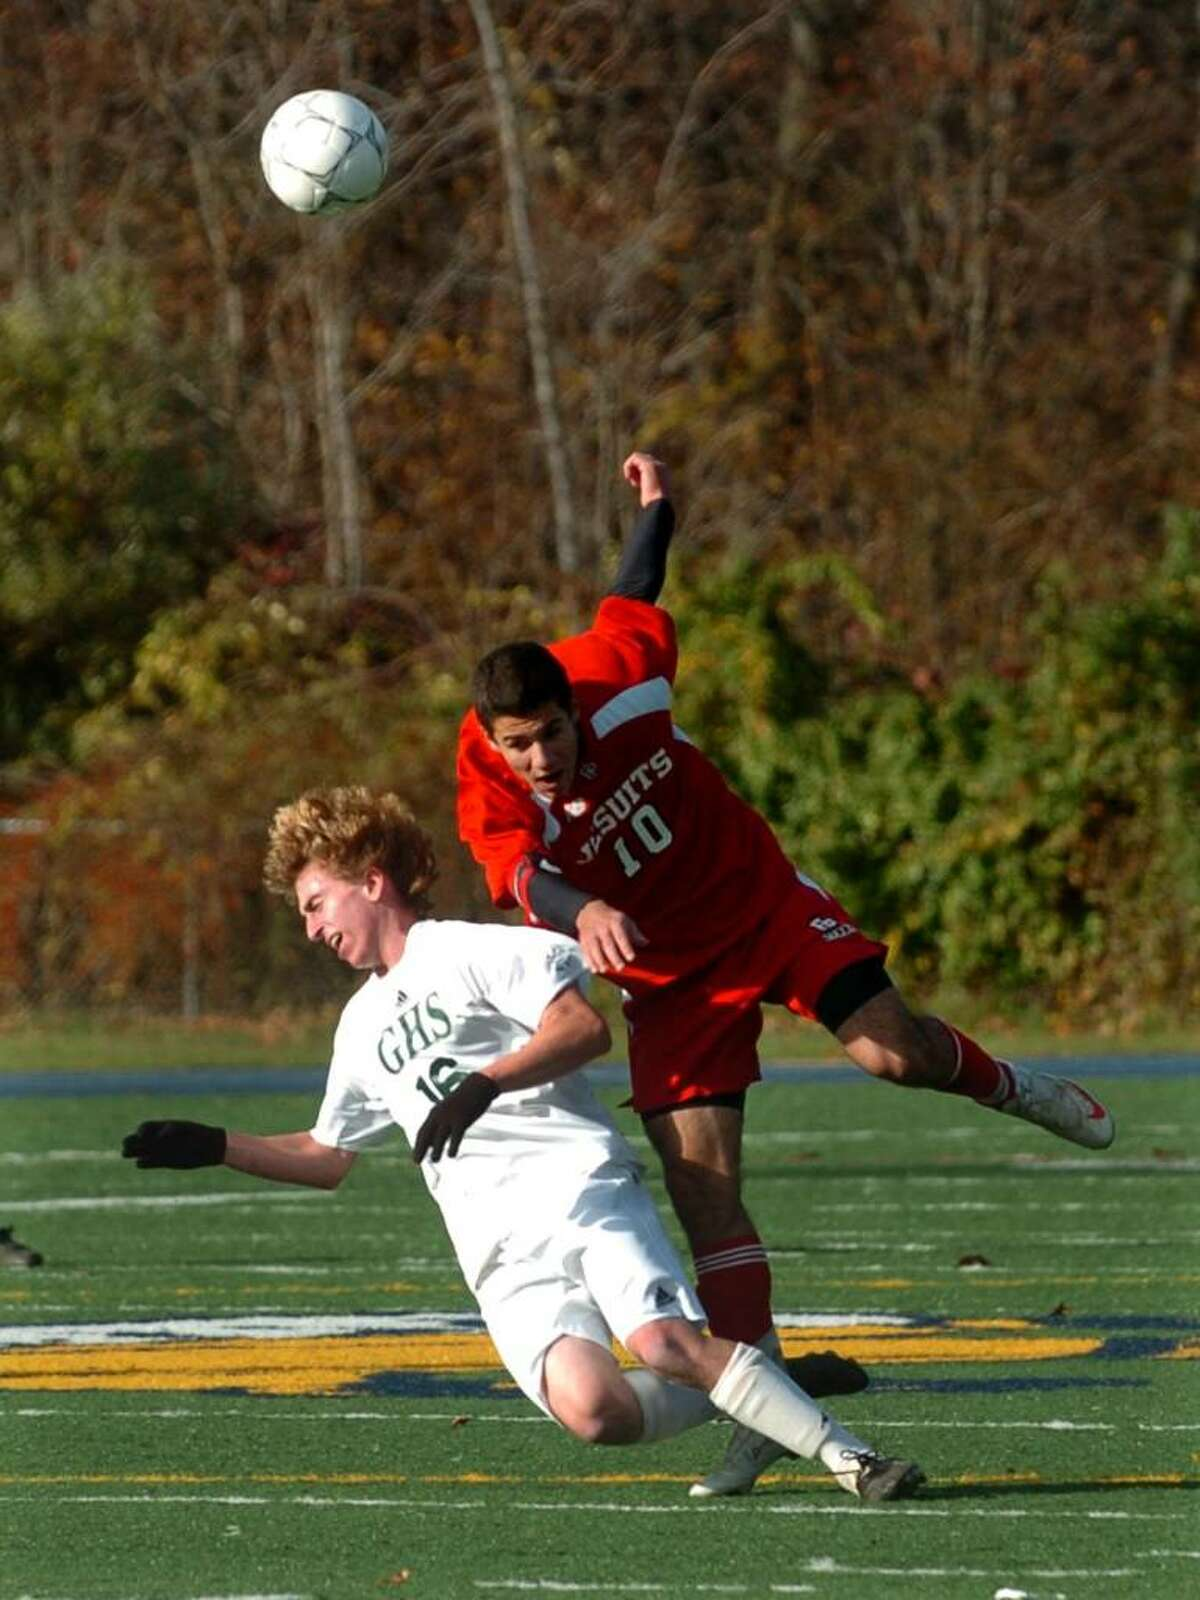 Fairfield Prep's #10 Sofian Ahtchi, right, and Guilford's #16 Michael Jacobsen fall after colliding, during SCC soccer action in East Haven, Conn. on Friday Nov. 06, 2009.